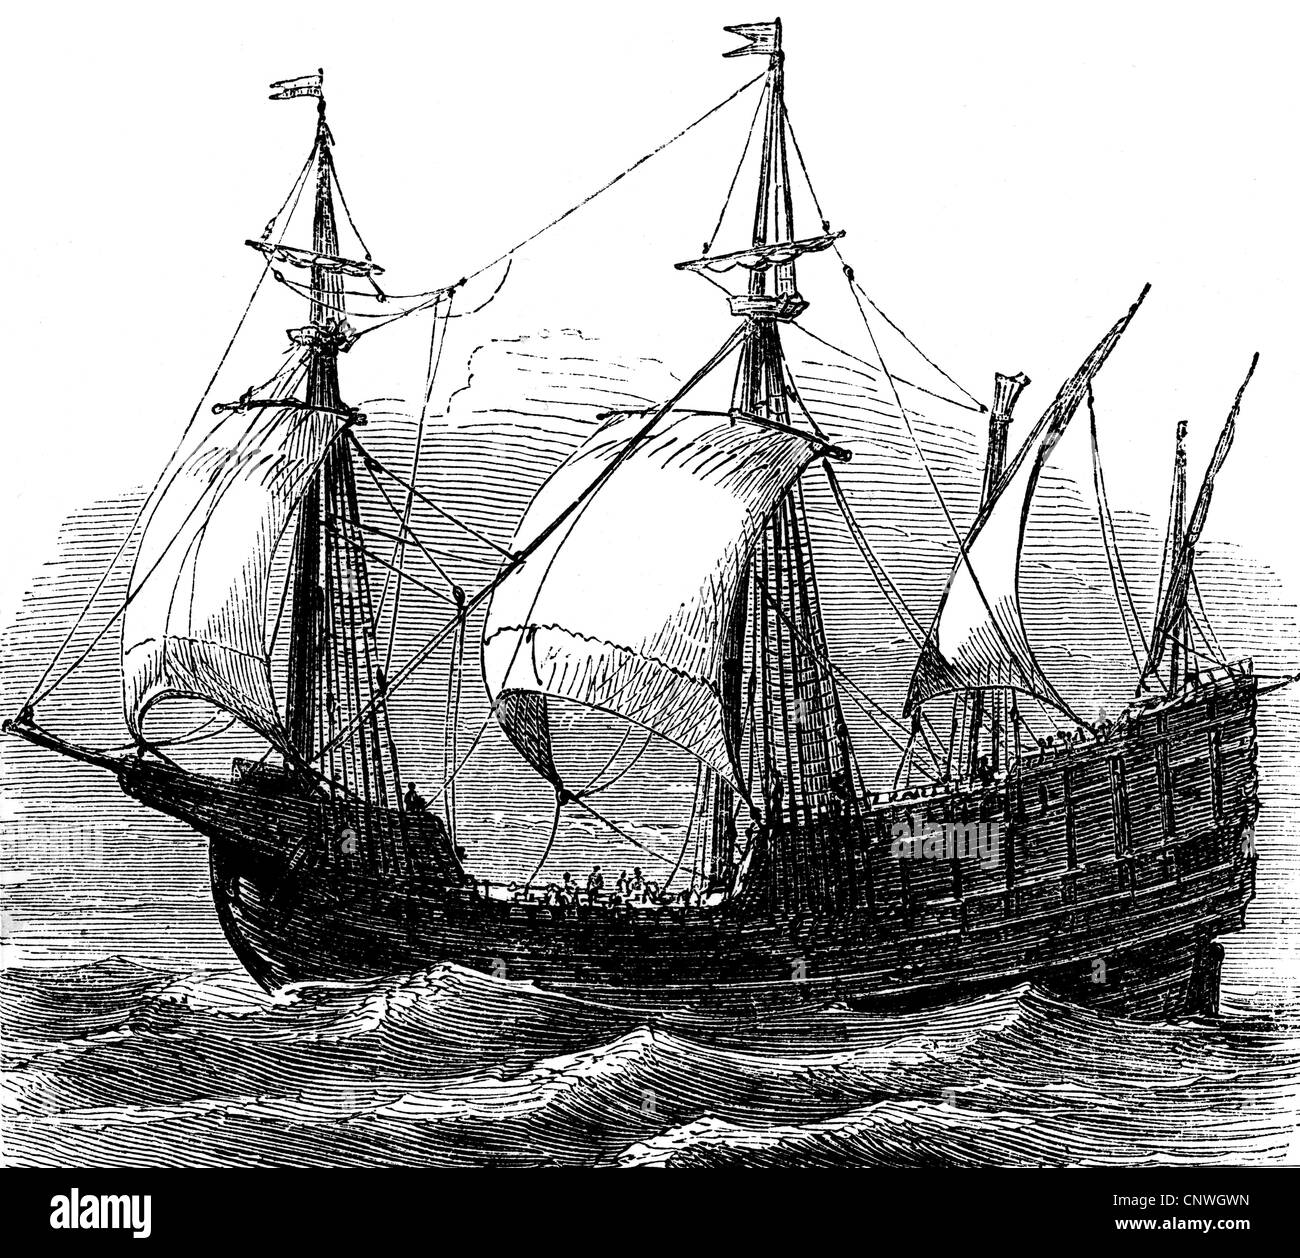 transport / transportation, navigation, sailing ships, caravel, caravel from the 15th century, wood engraving, 19th - Stock Image